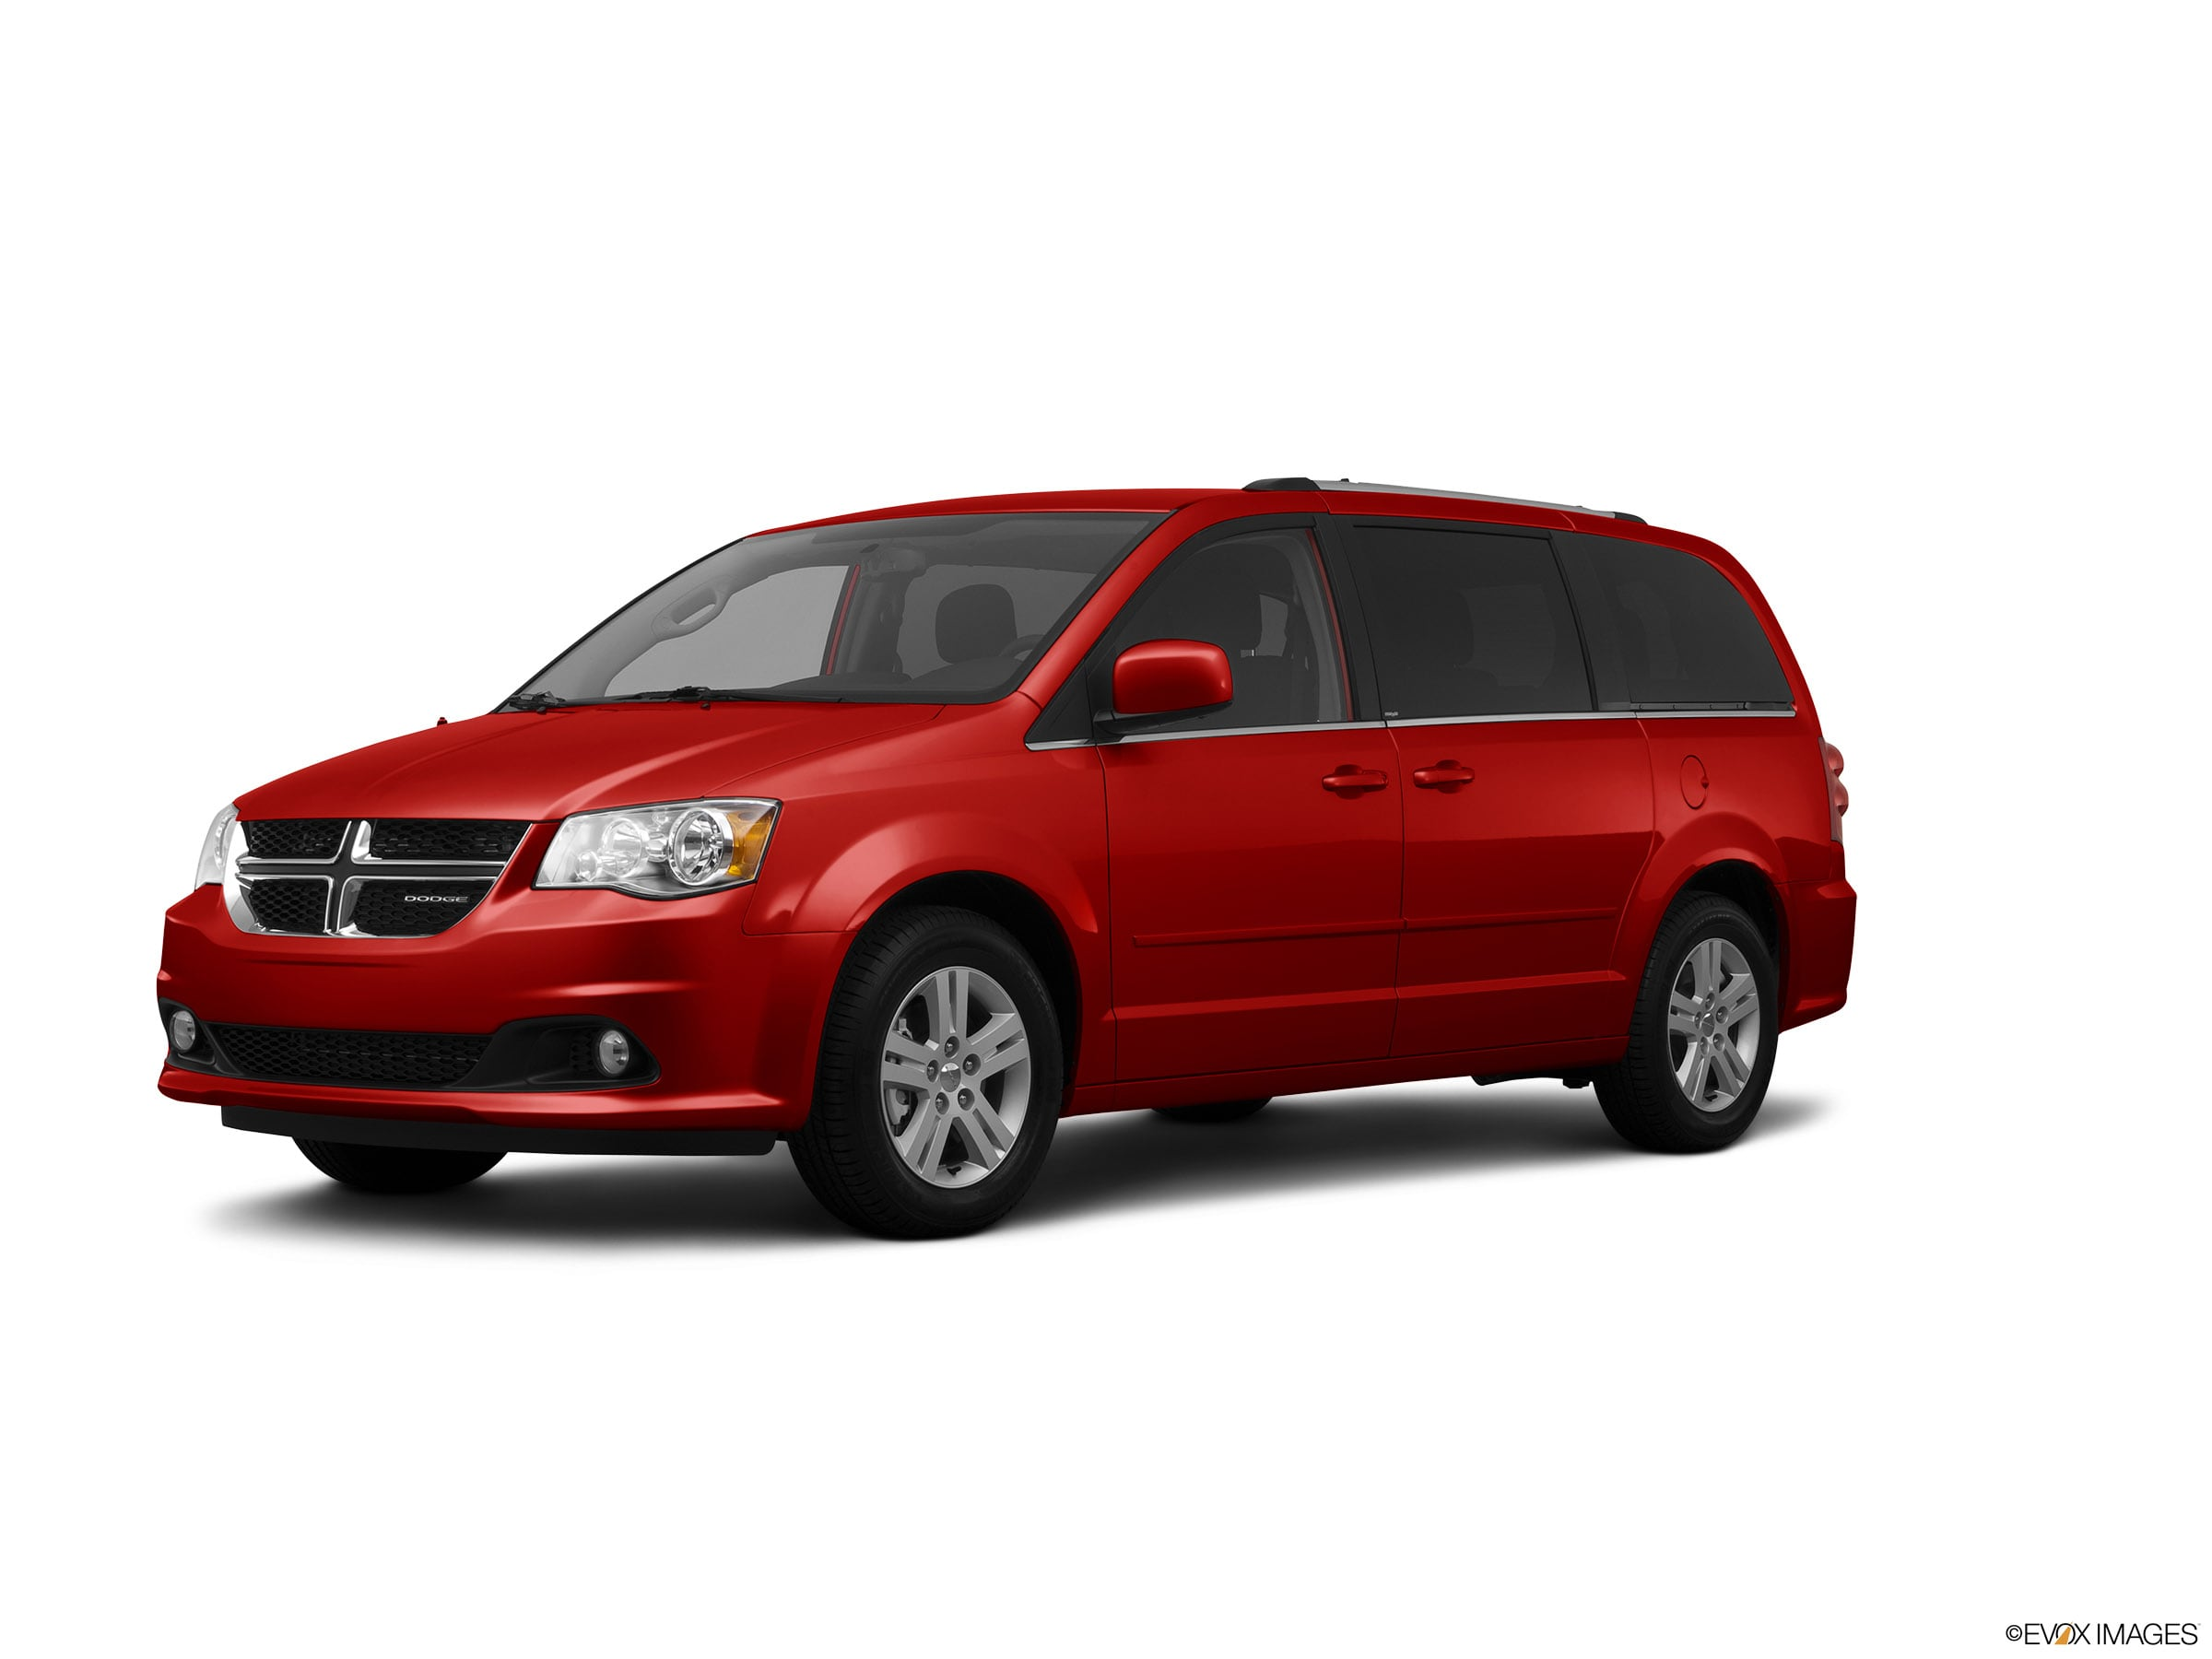 used 2012 Dodge Grand Caravan car, priced at $10,500